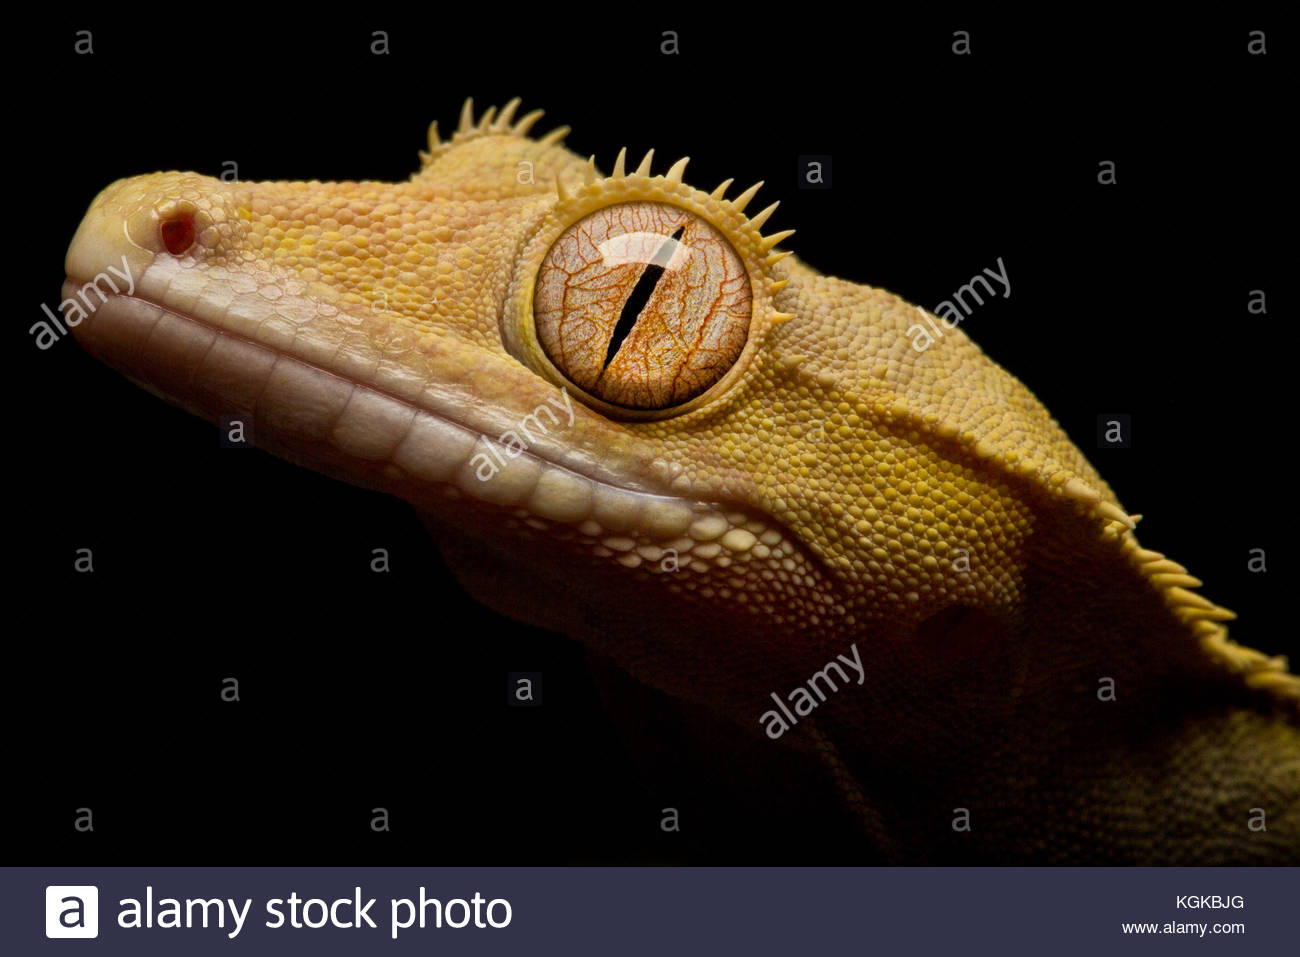 Close Up retrato de un Crested Gecko, Correlophus ciliatus. Imagen De Stock